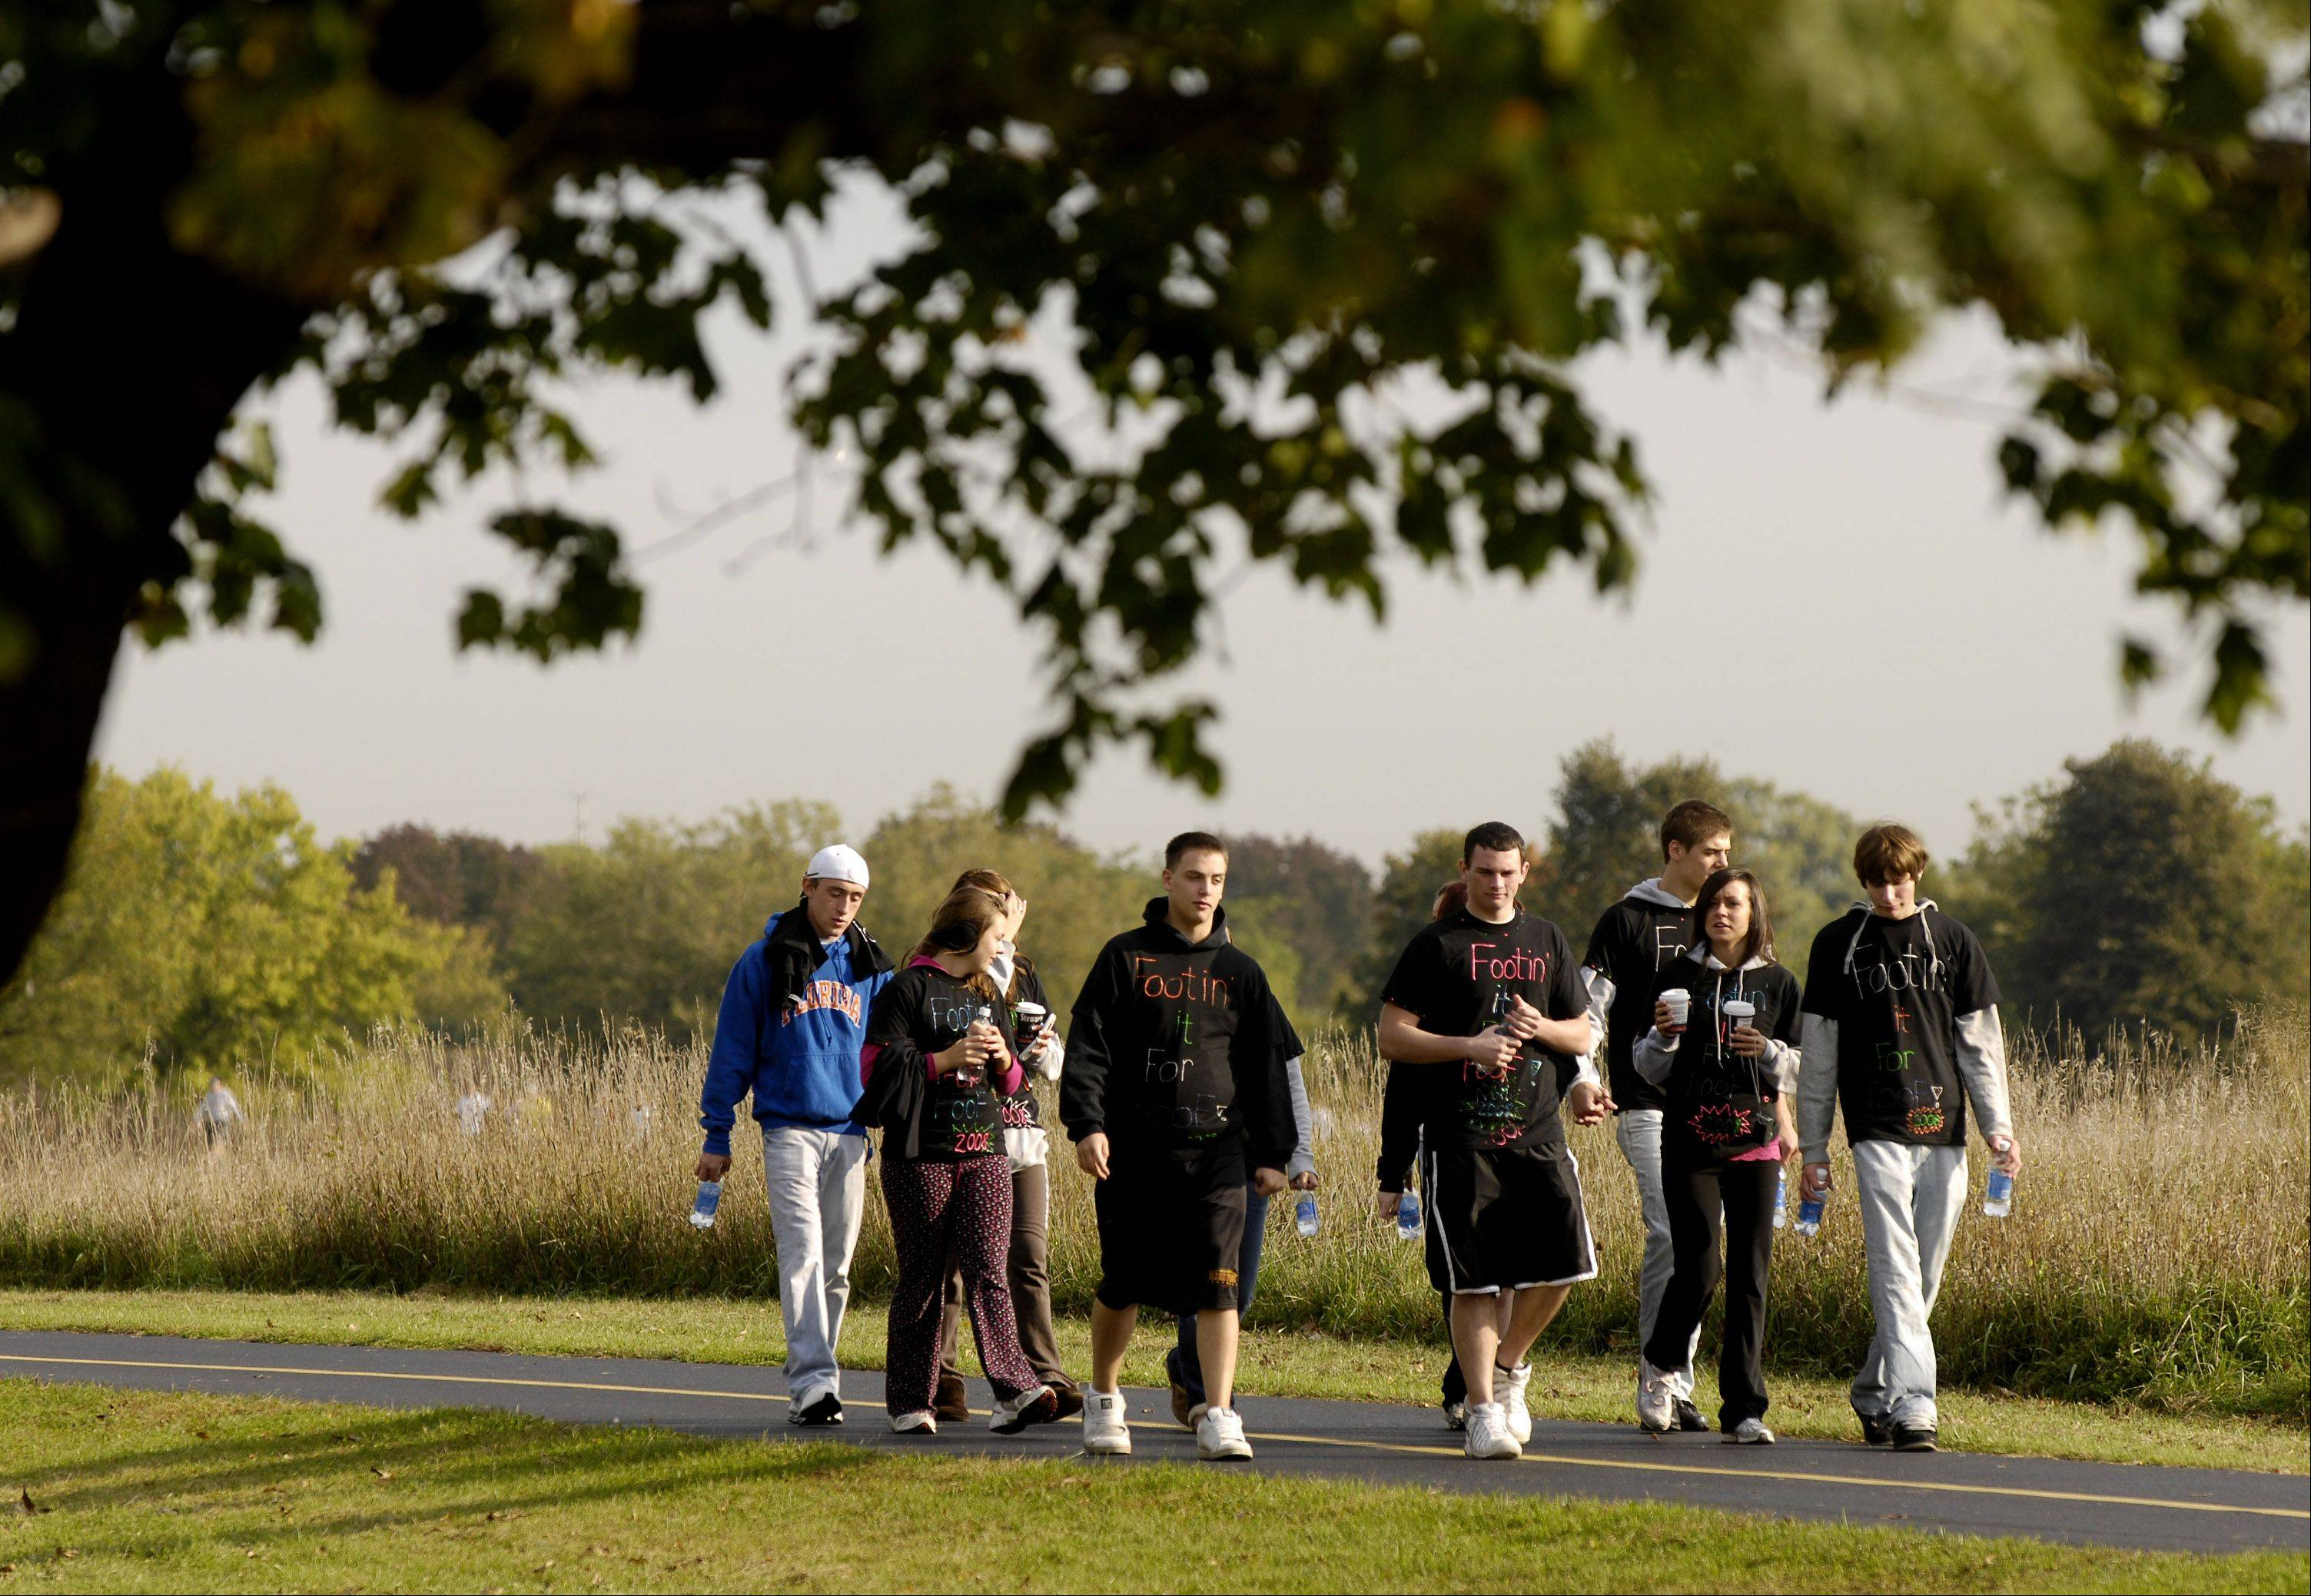 Family, friends and co-workers often form fundraising teams and participate together in the Ron Santo Walk to Cure Diabetes like this group taking part in the walk at Busse Woods in Schaumburg.